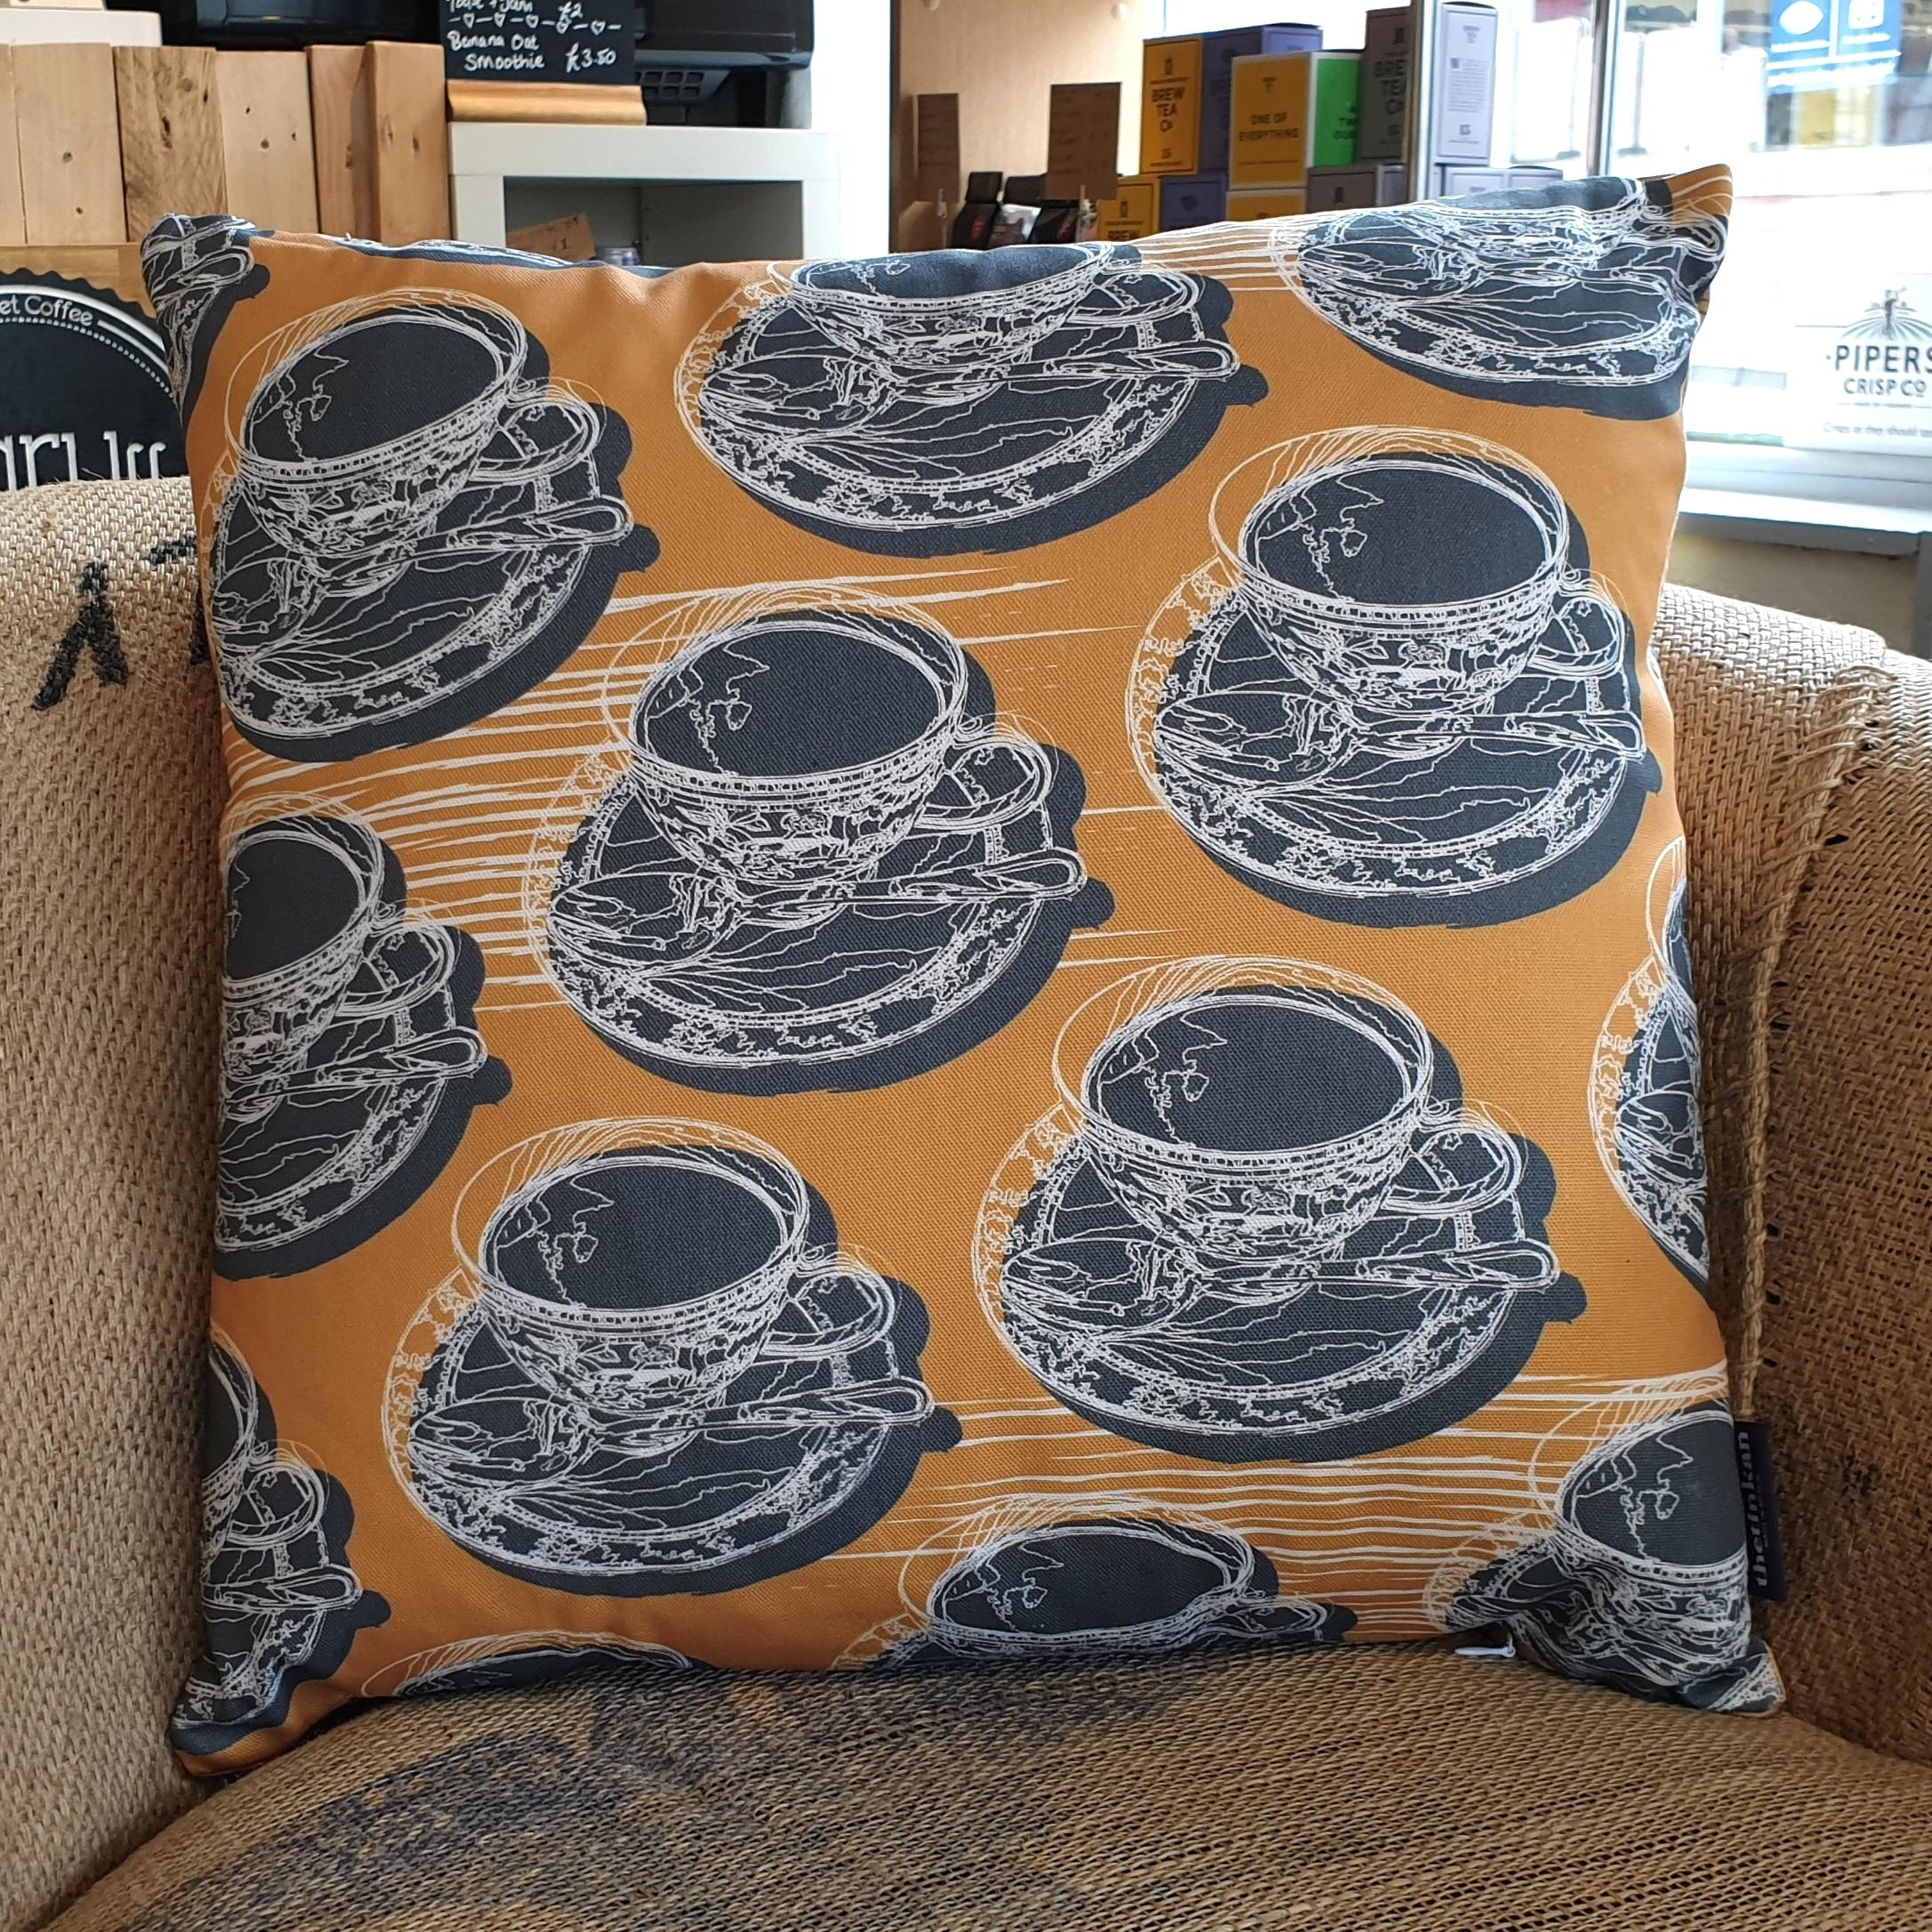 Double-sided mustard yellow 45cm square retro Afternoon Tea cushion with artistic white shards designed by thetinkan. White traced outline of multiple British teacups and saucers each colour filled in charcoal grey. Available with an optional luxury cushion inner pad. VIEW PRODUCT >>